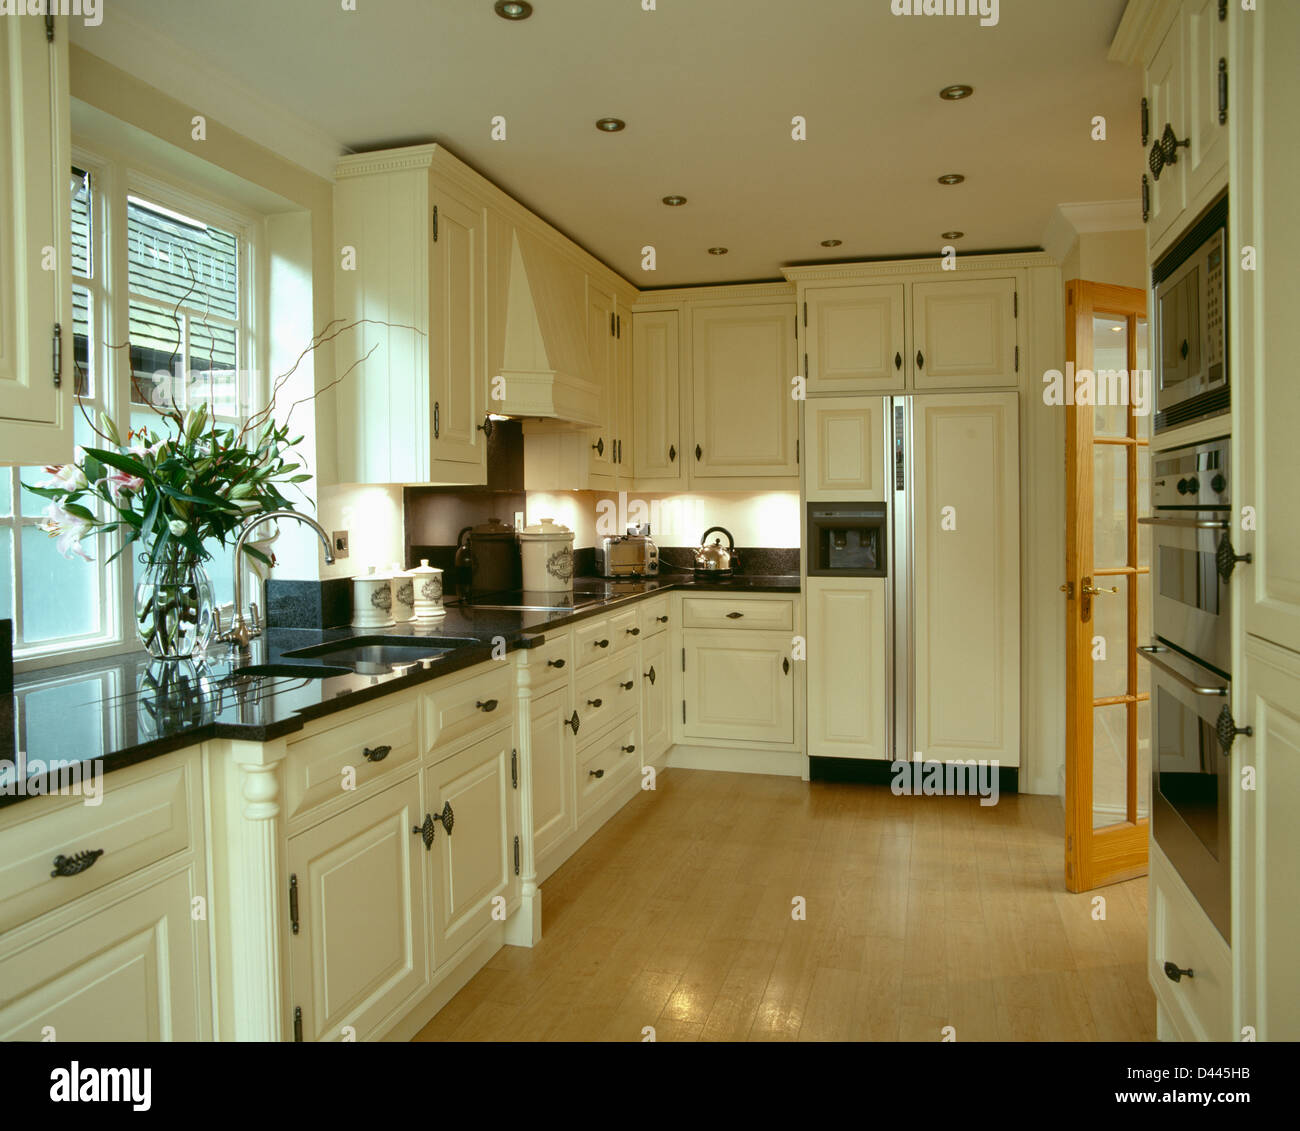 Cream Kitchen Black Worktops: Cream Units With Black Granite Worktops In Kitchen With